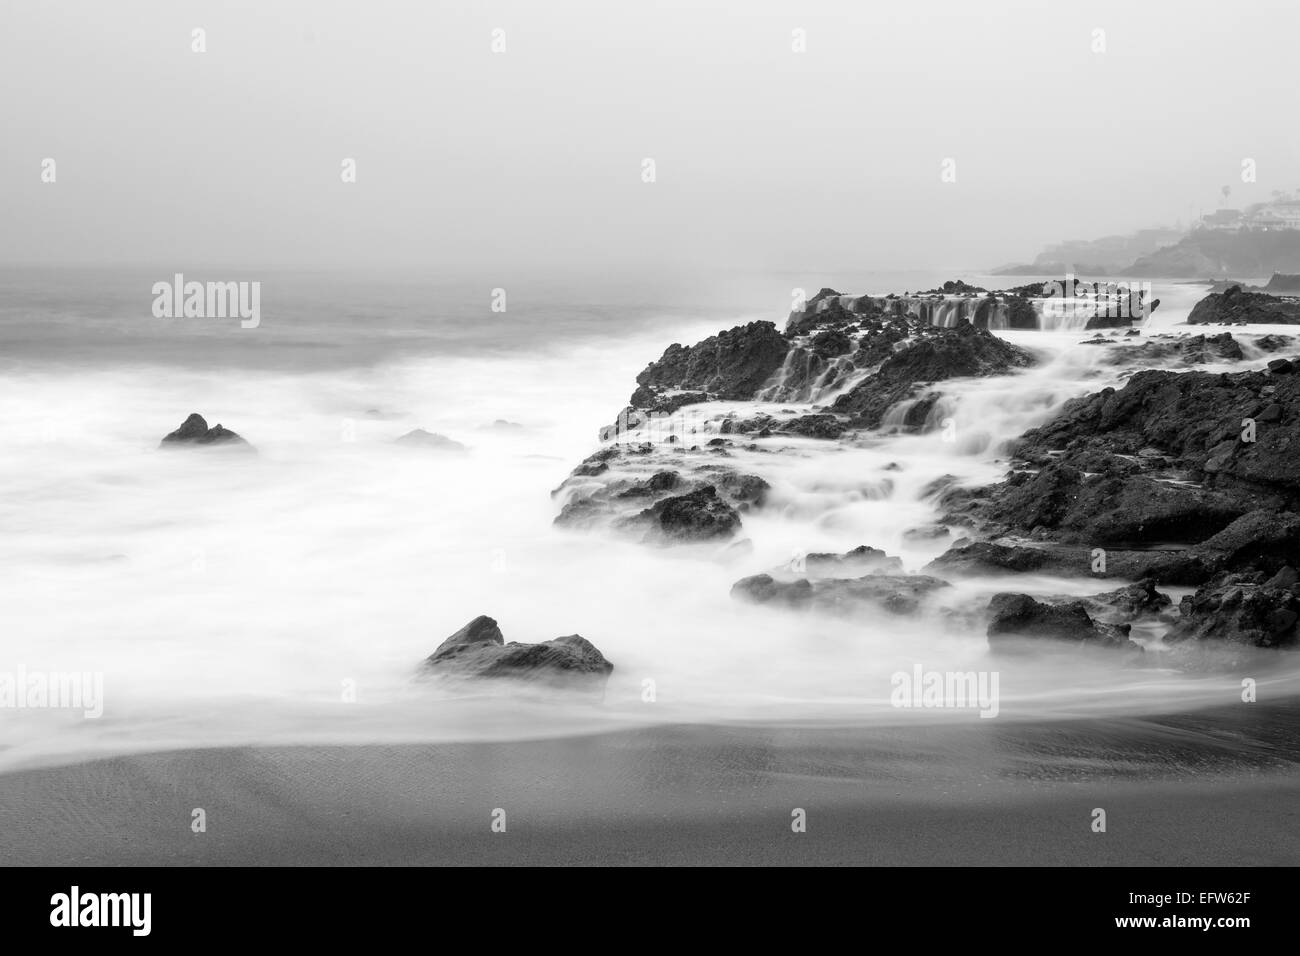 An early morning slow motion images of seawater rushing over sharp, rugged shoreline reef in Laguna Beach, California. Stock Photo